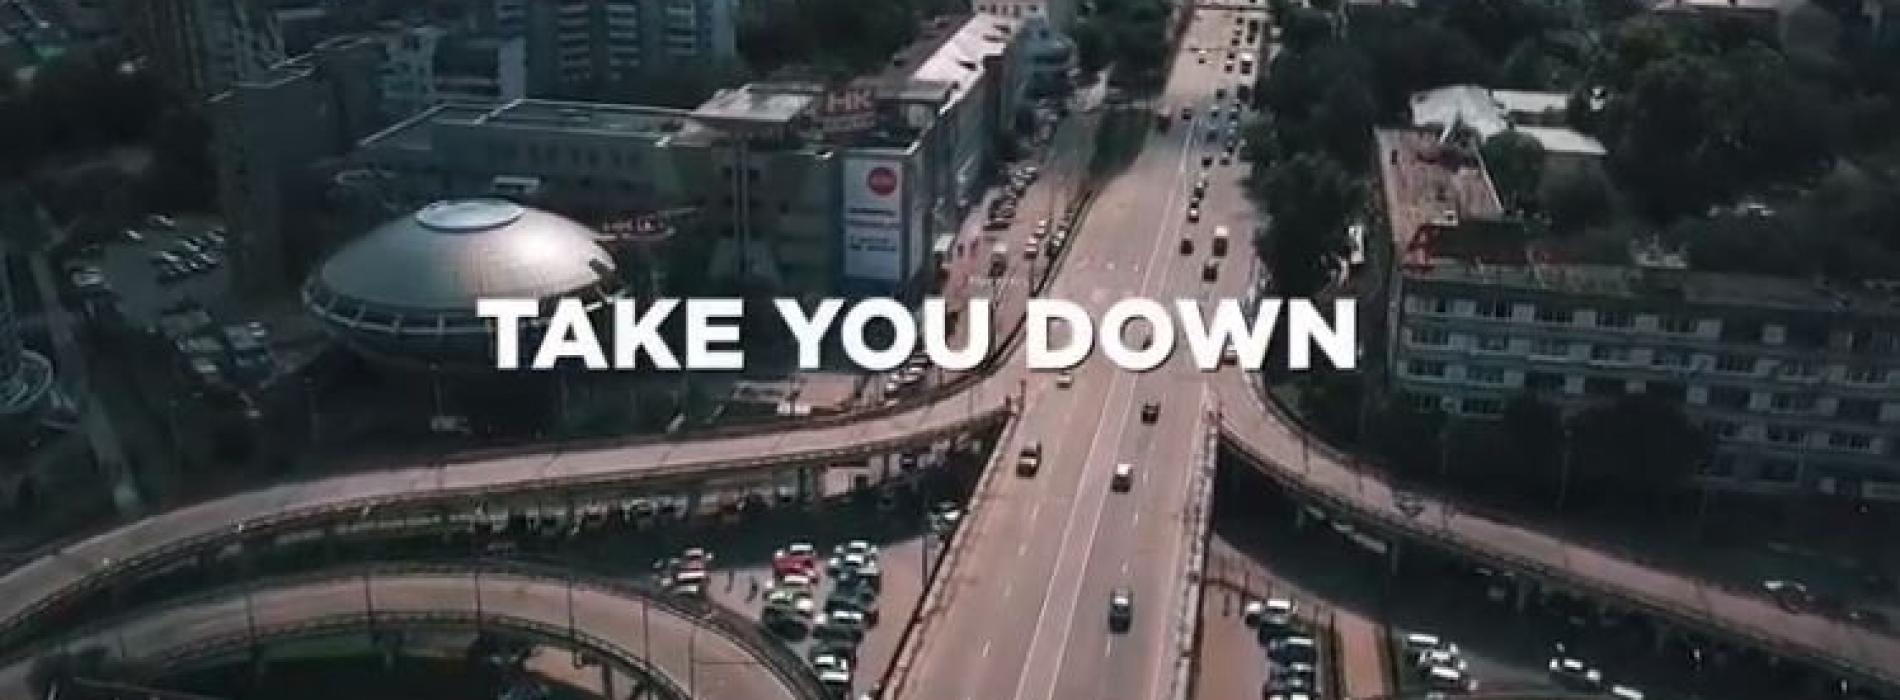 New Music : R-CUE, Rydah – Take you down (ft JaRay) (Official Music Video)